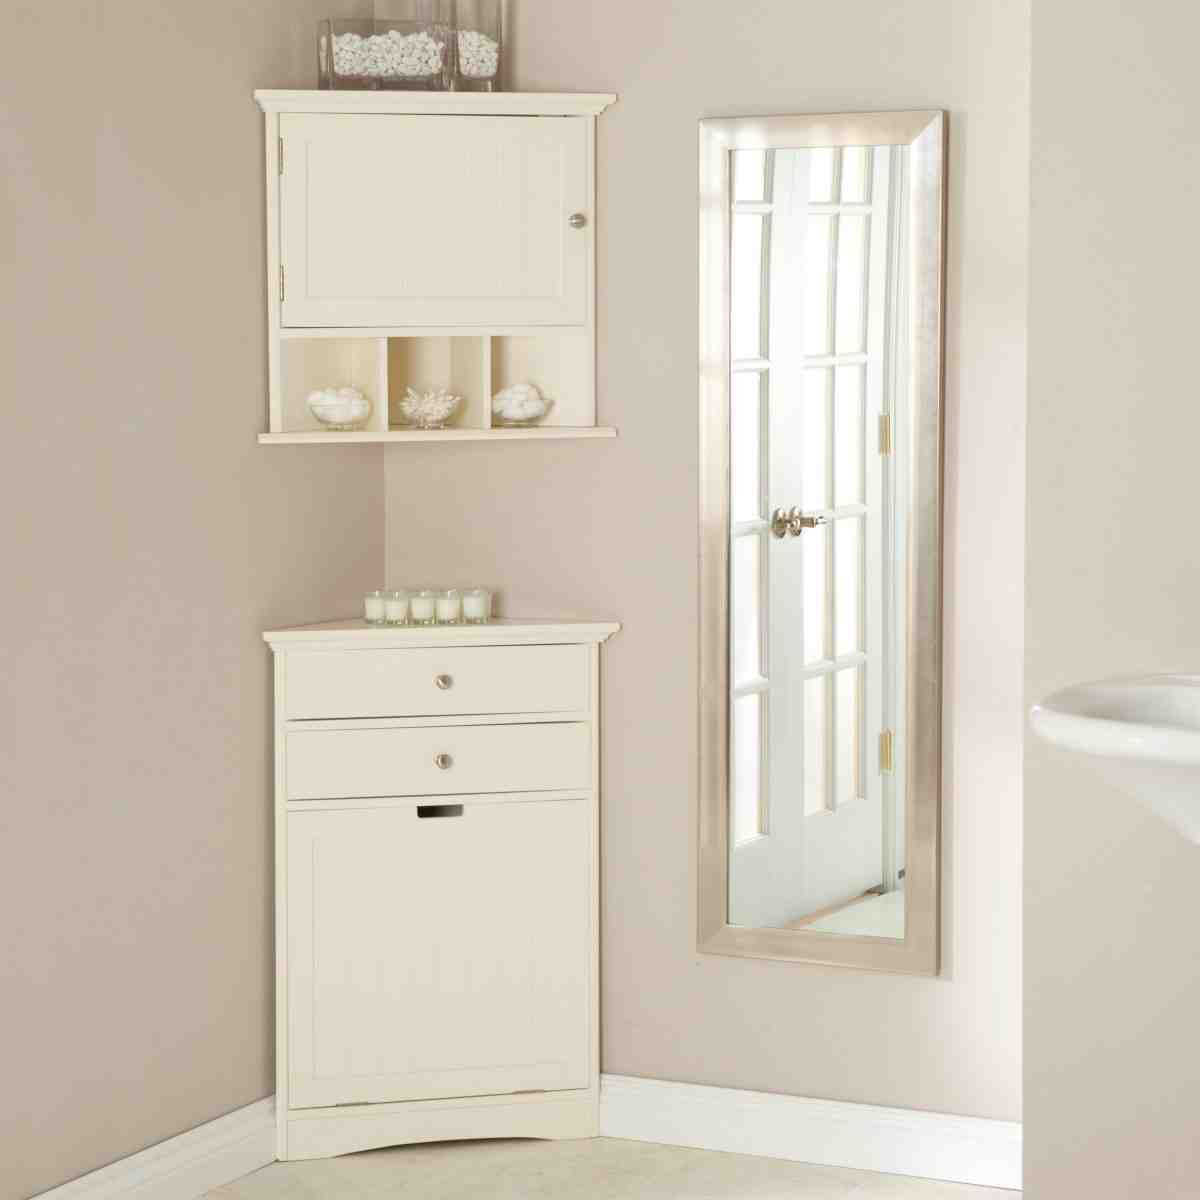 White Bathroom Corner Cabinet | Better white bathroom cabinet ...